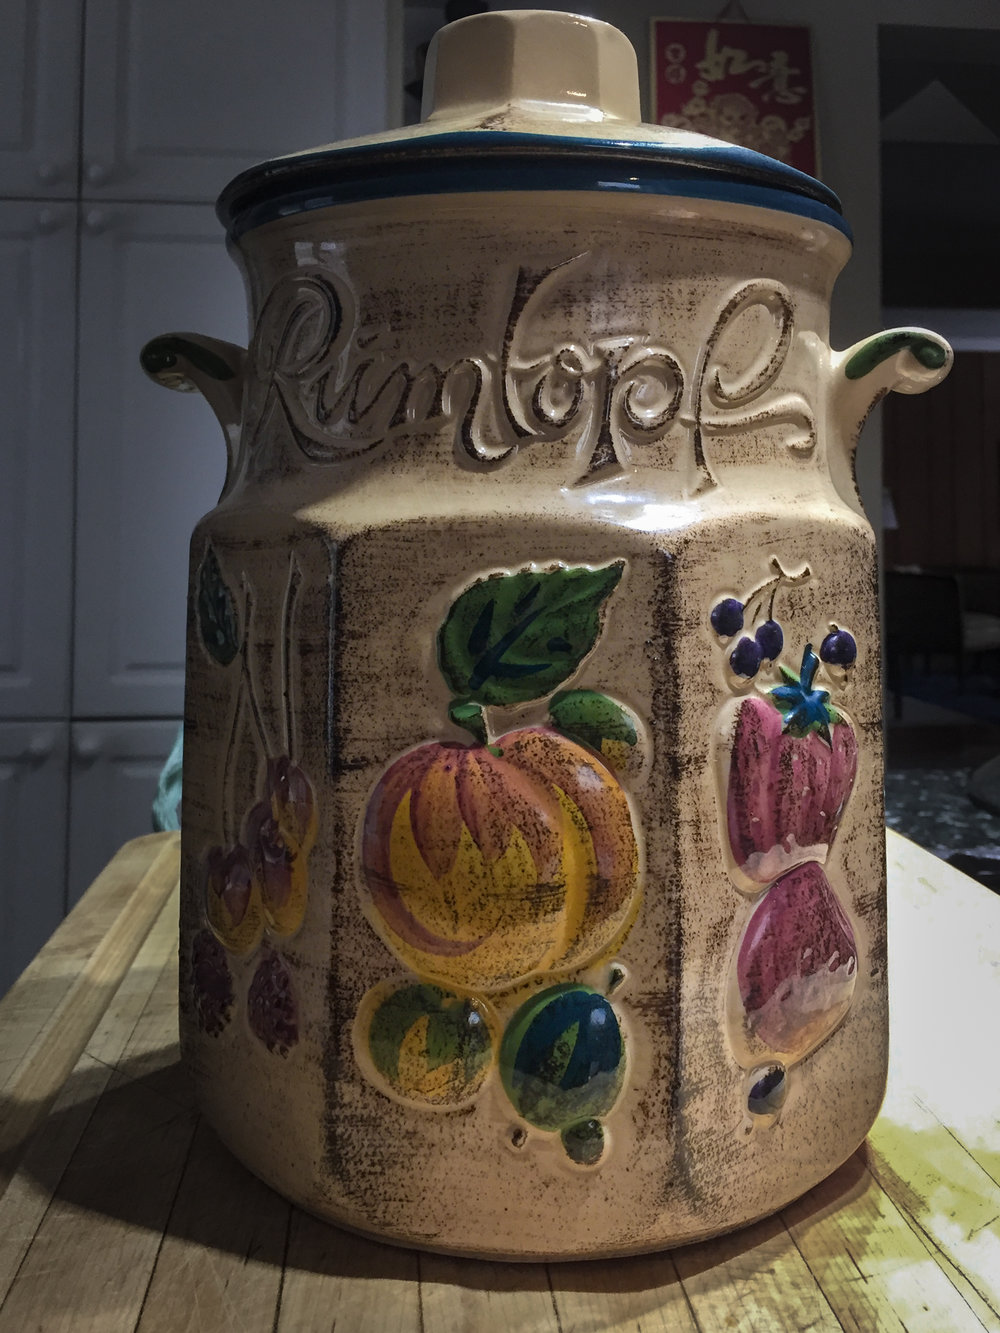 Rumtopf that I will use to hold the sauerkraut